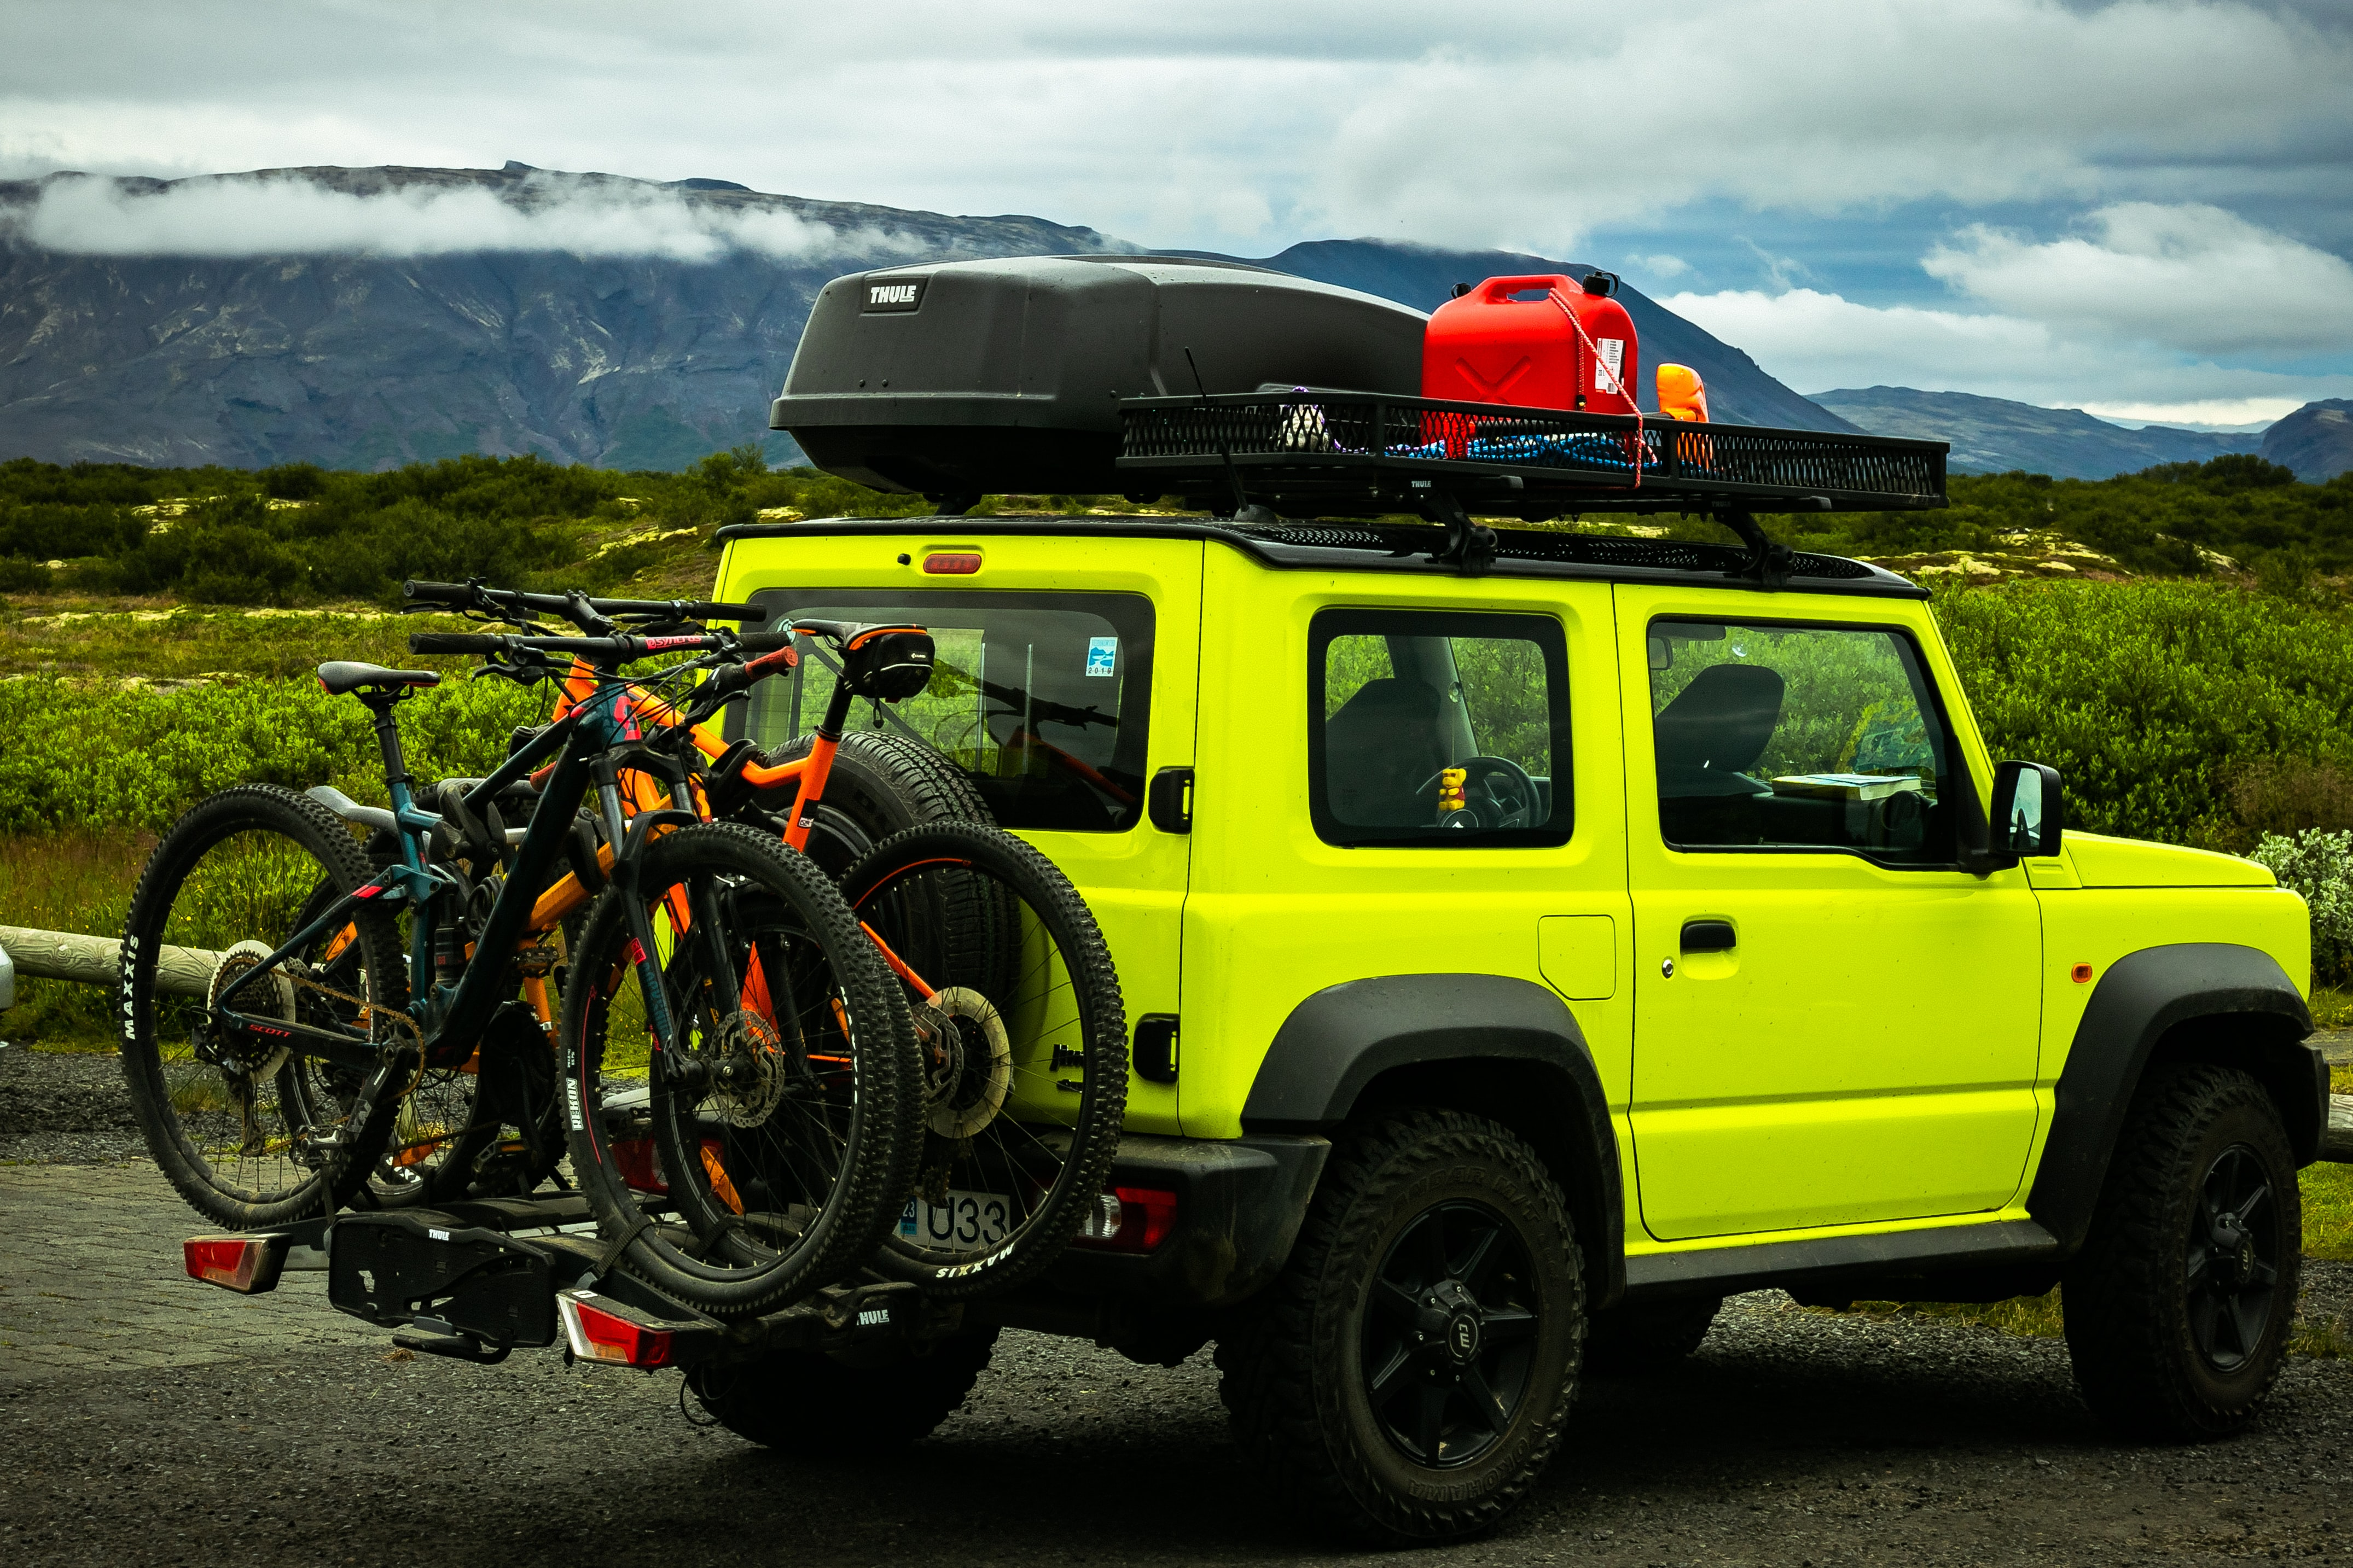 The gear experts at evo have this advice for anyone planning a mountain bike road trip this summer. Photo by Saikrishna Saketh